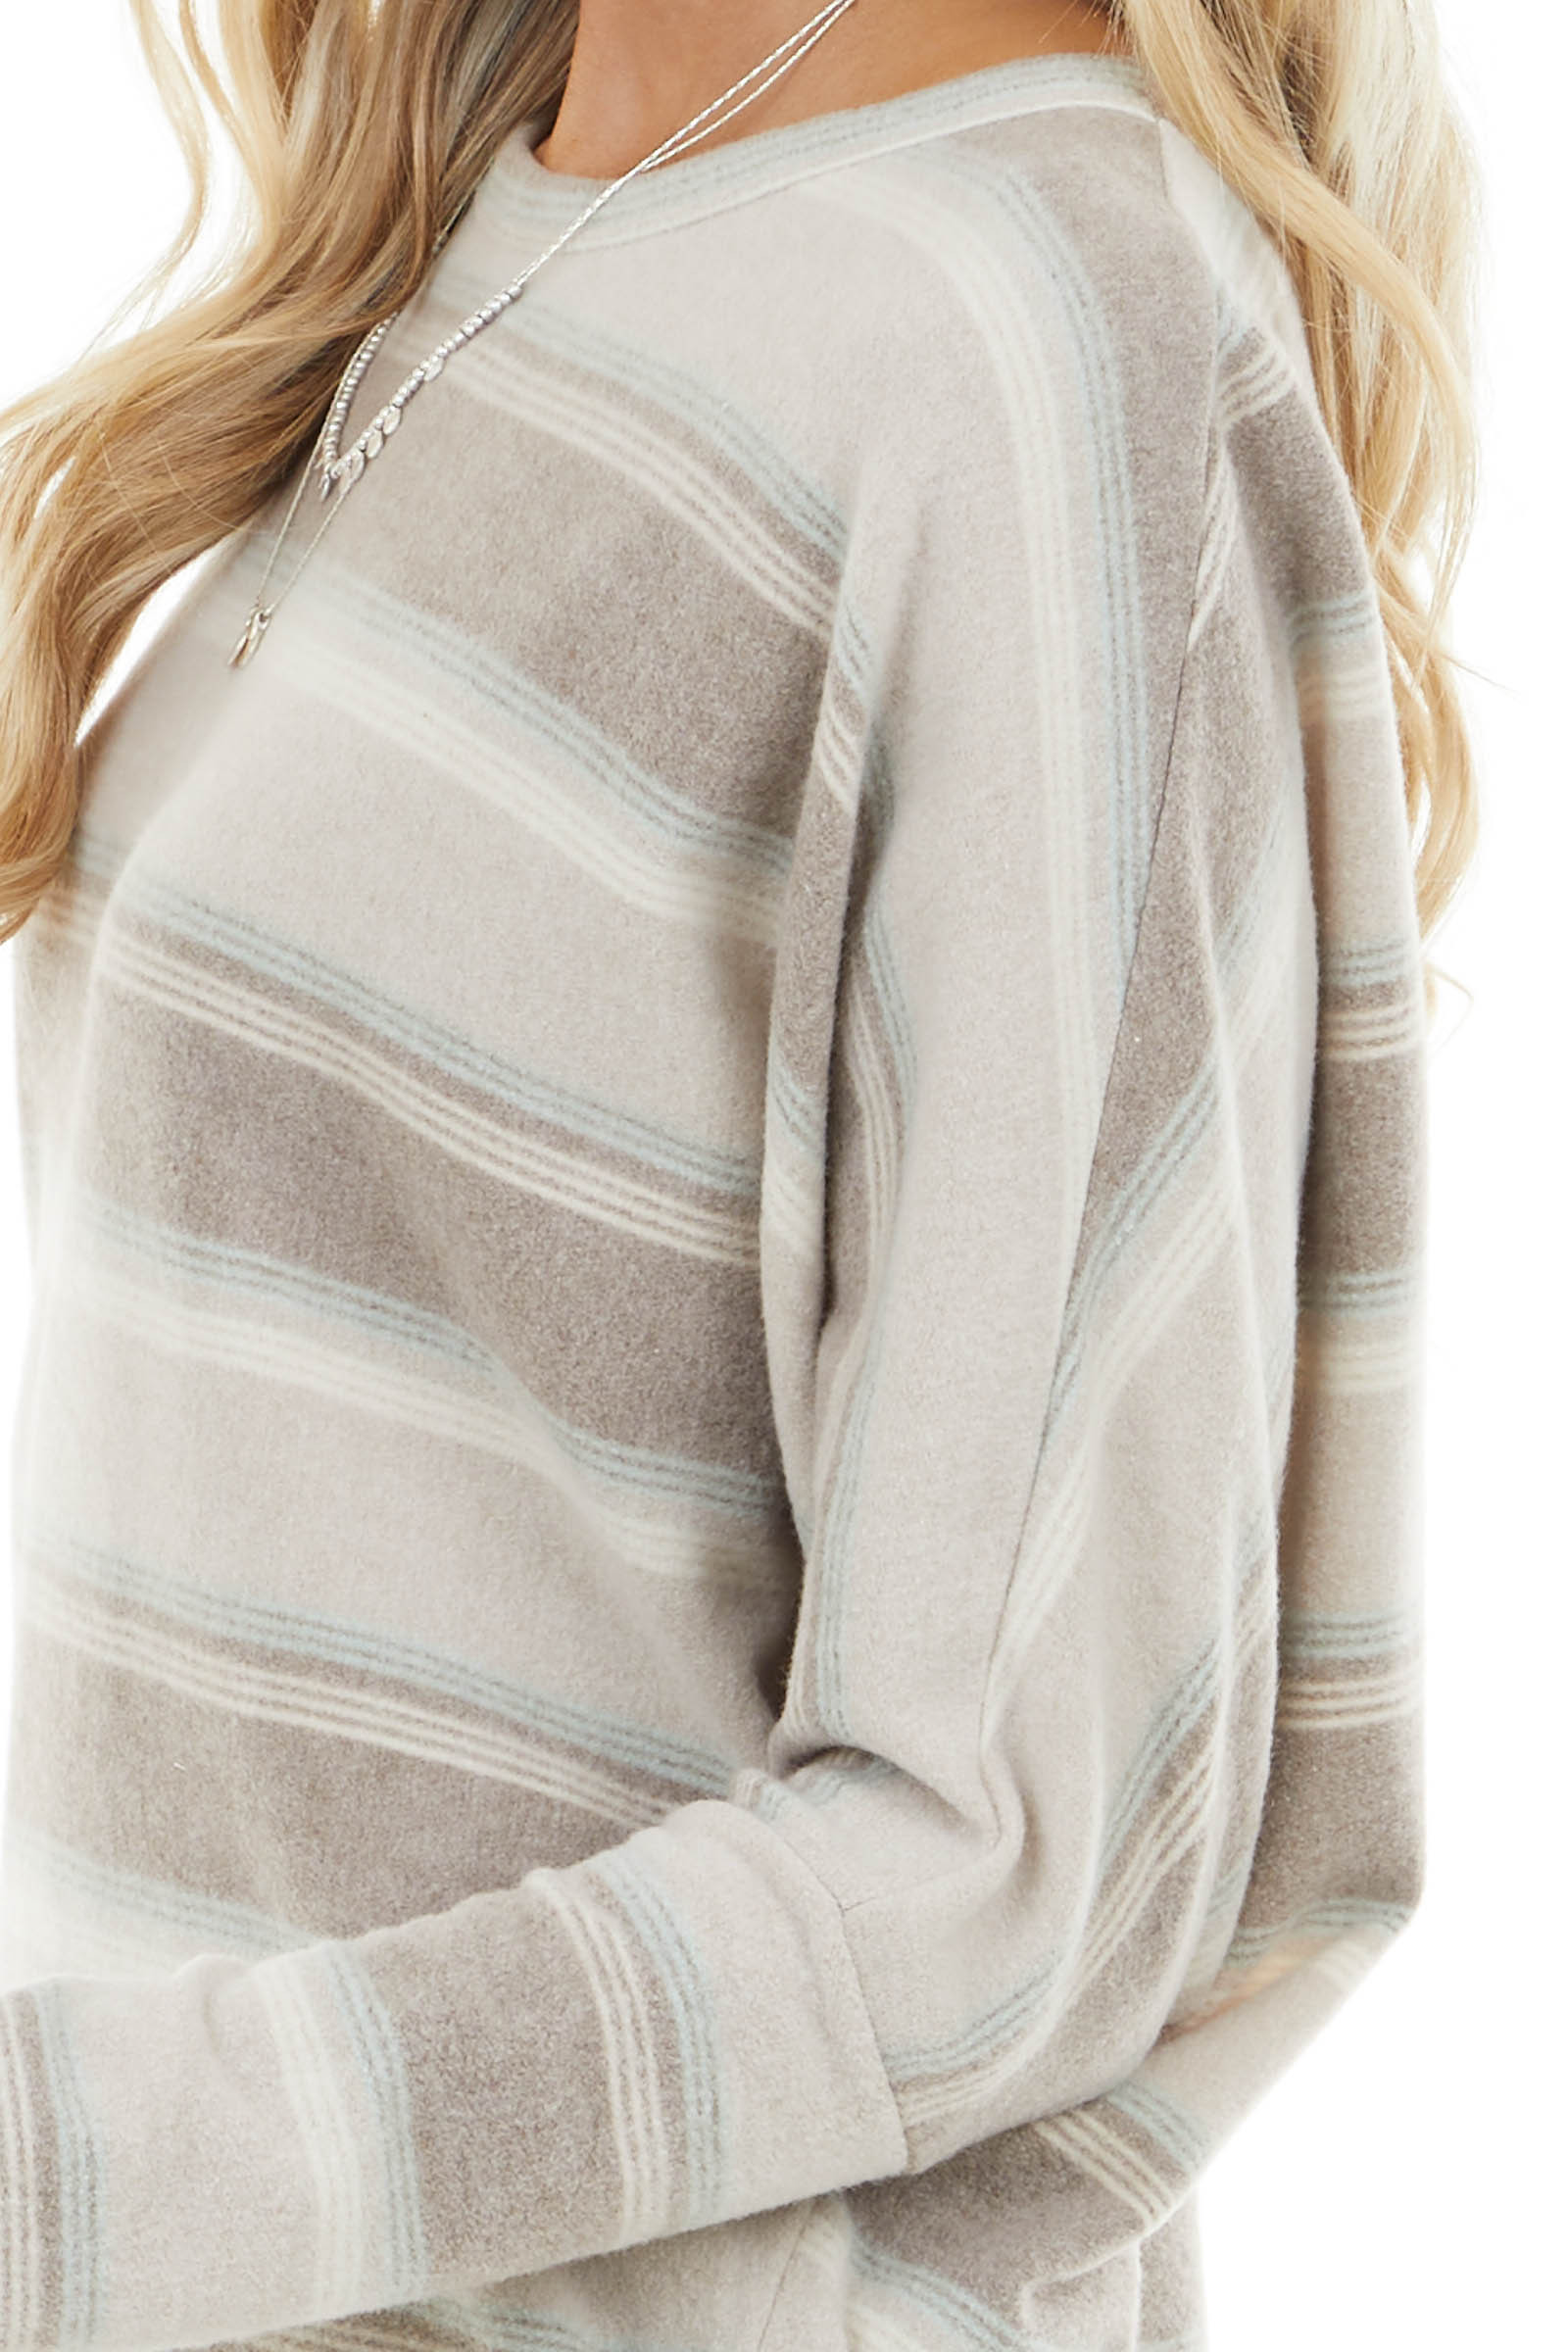 Taupe and Sky Blue Striped Soft Knit Top with Dolman Sleeves